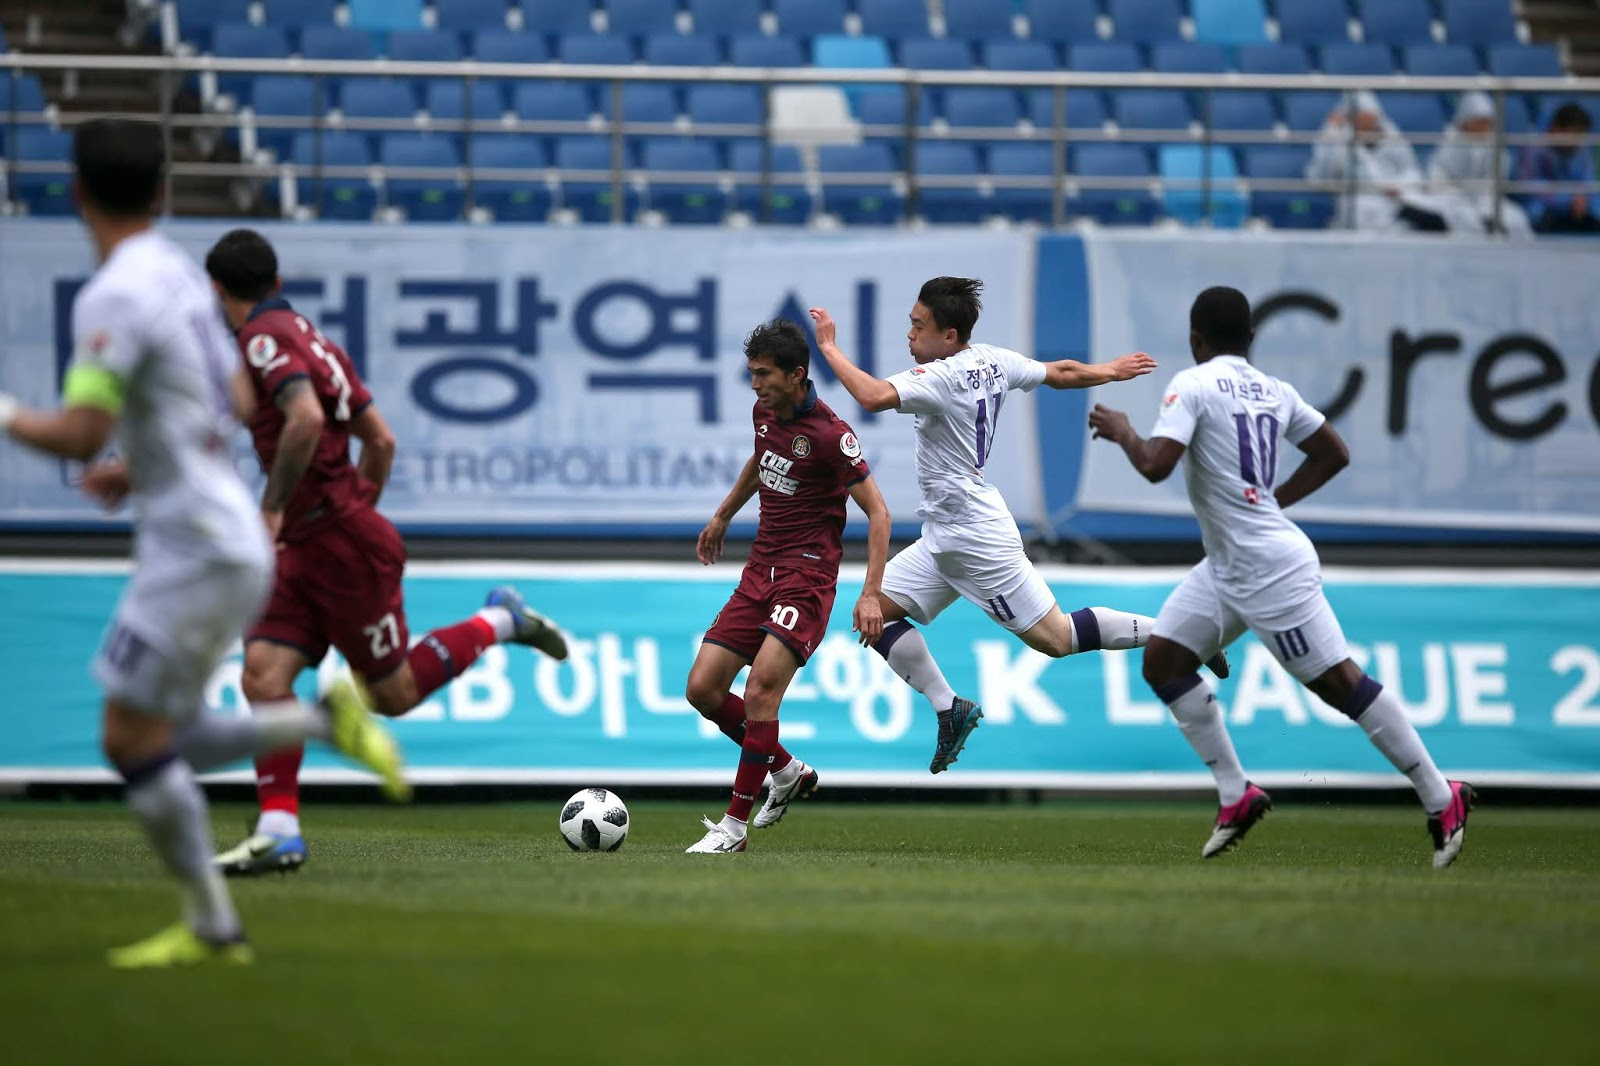 Preview: Daejeon Citizen vs FC Anyang K League 2 Shohruh Gadoev